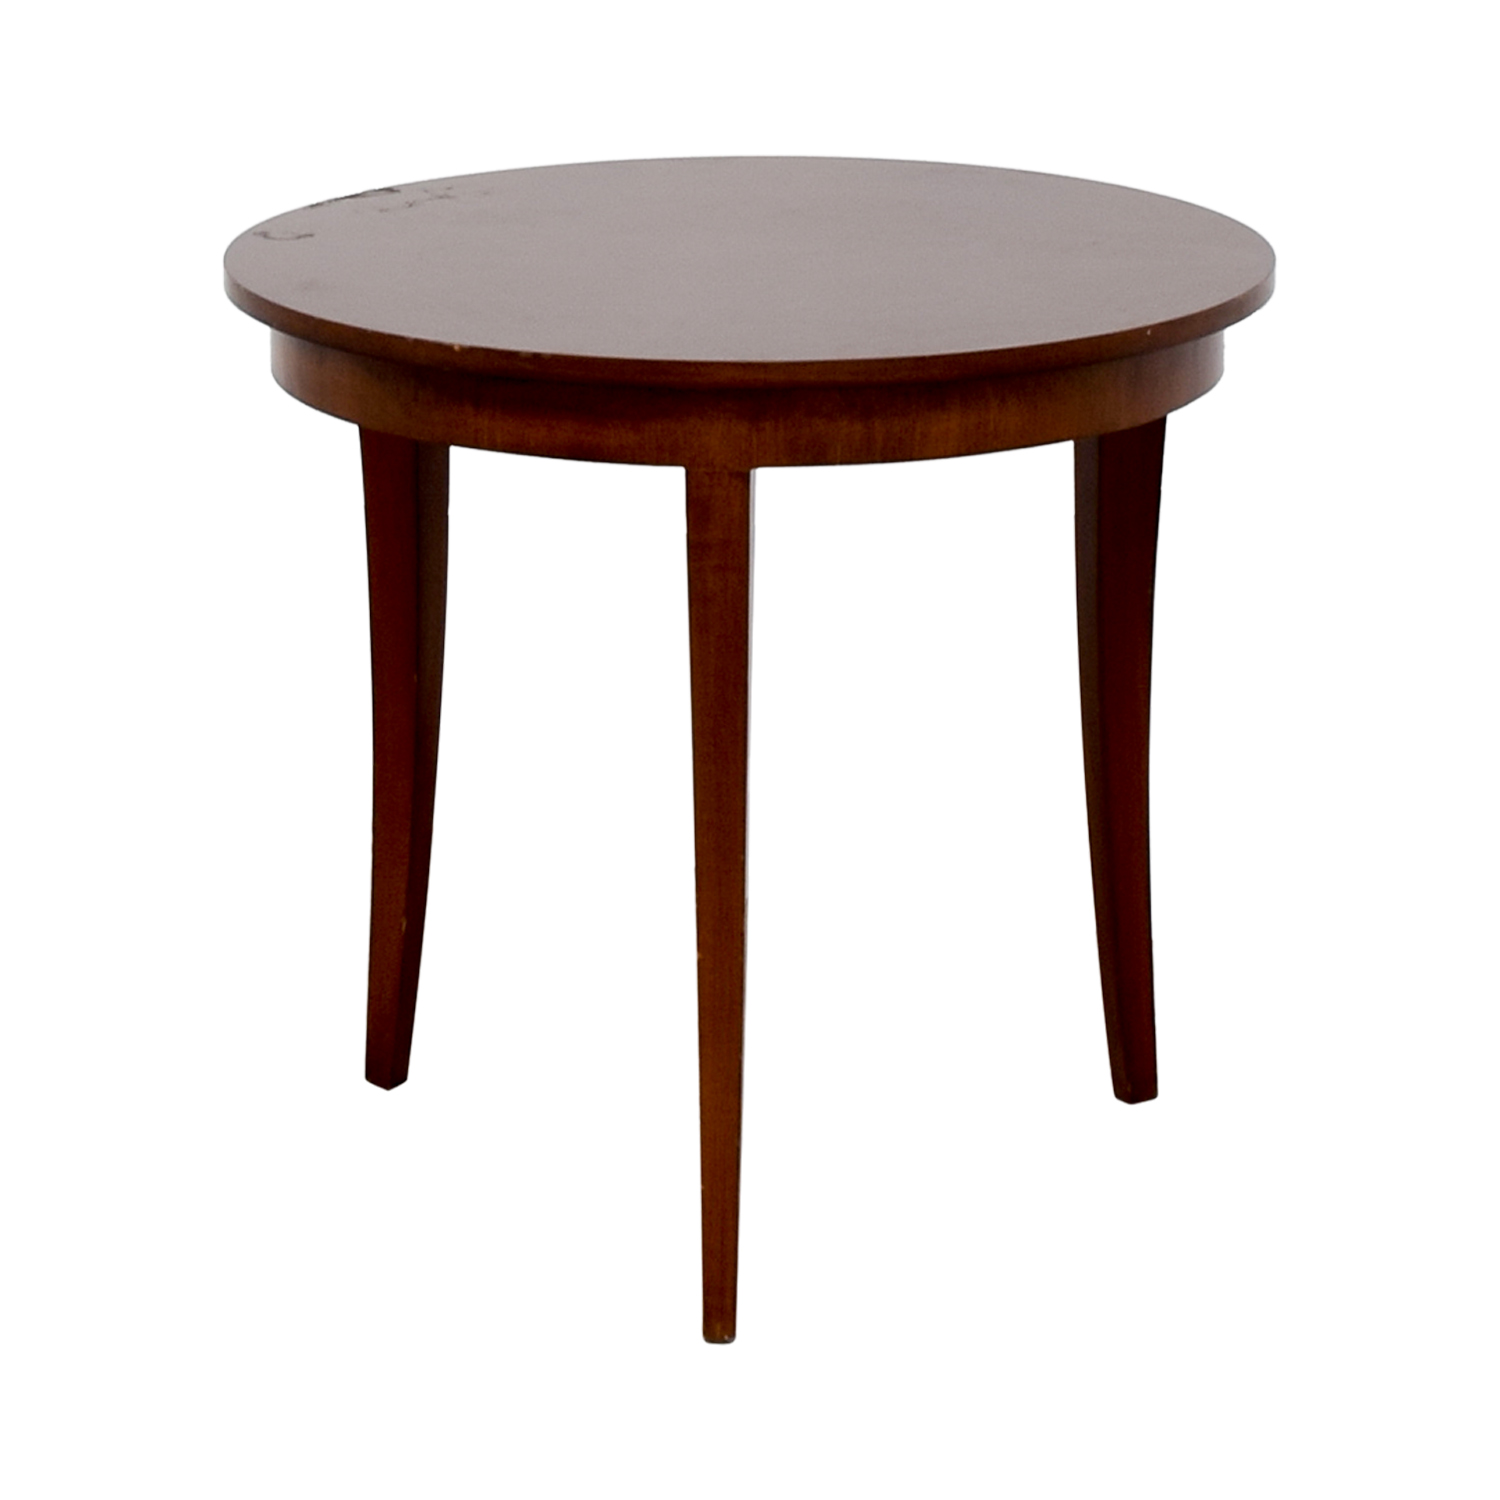 shop Furniture Masters Furniture Masters Round Wood End Table online